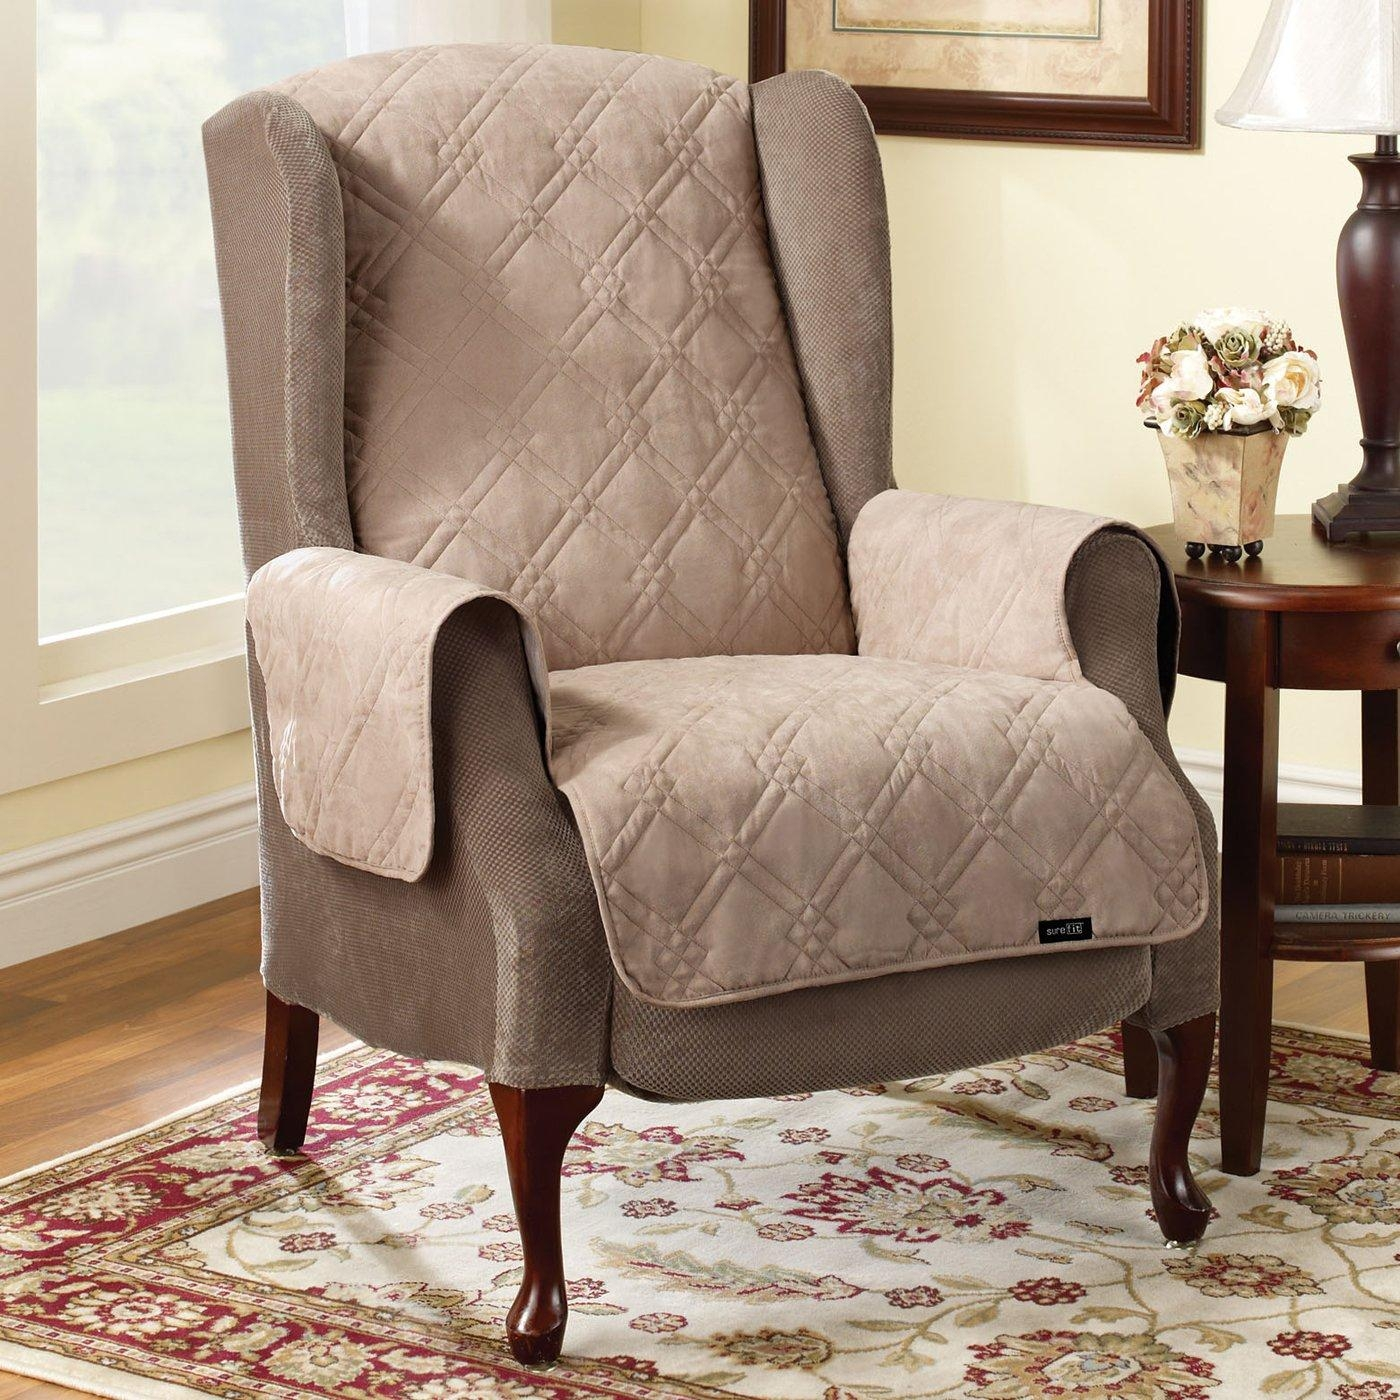 Interior Design Sure Fit® Stretch Pearson Recliner Slipcover Regarding Stretch Covers For Recliners (View 18 of 20)